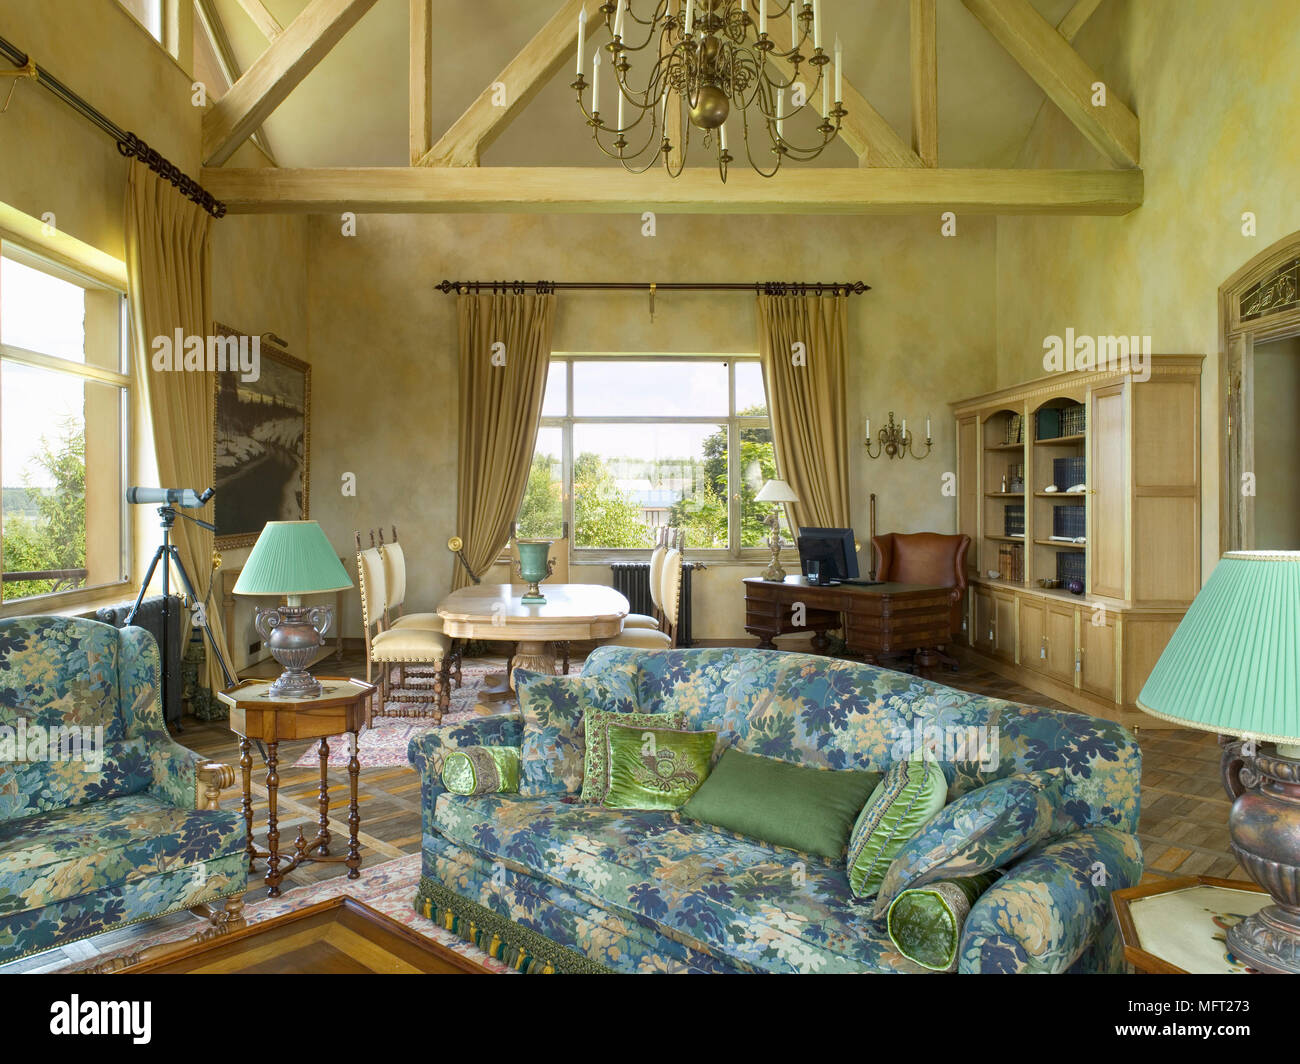 Sitting room with chandelier suspended from wooden beams above colourful settees with matching lampshades - Stock Image